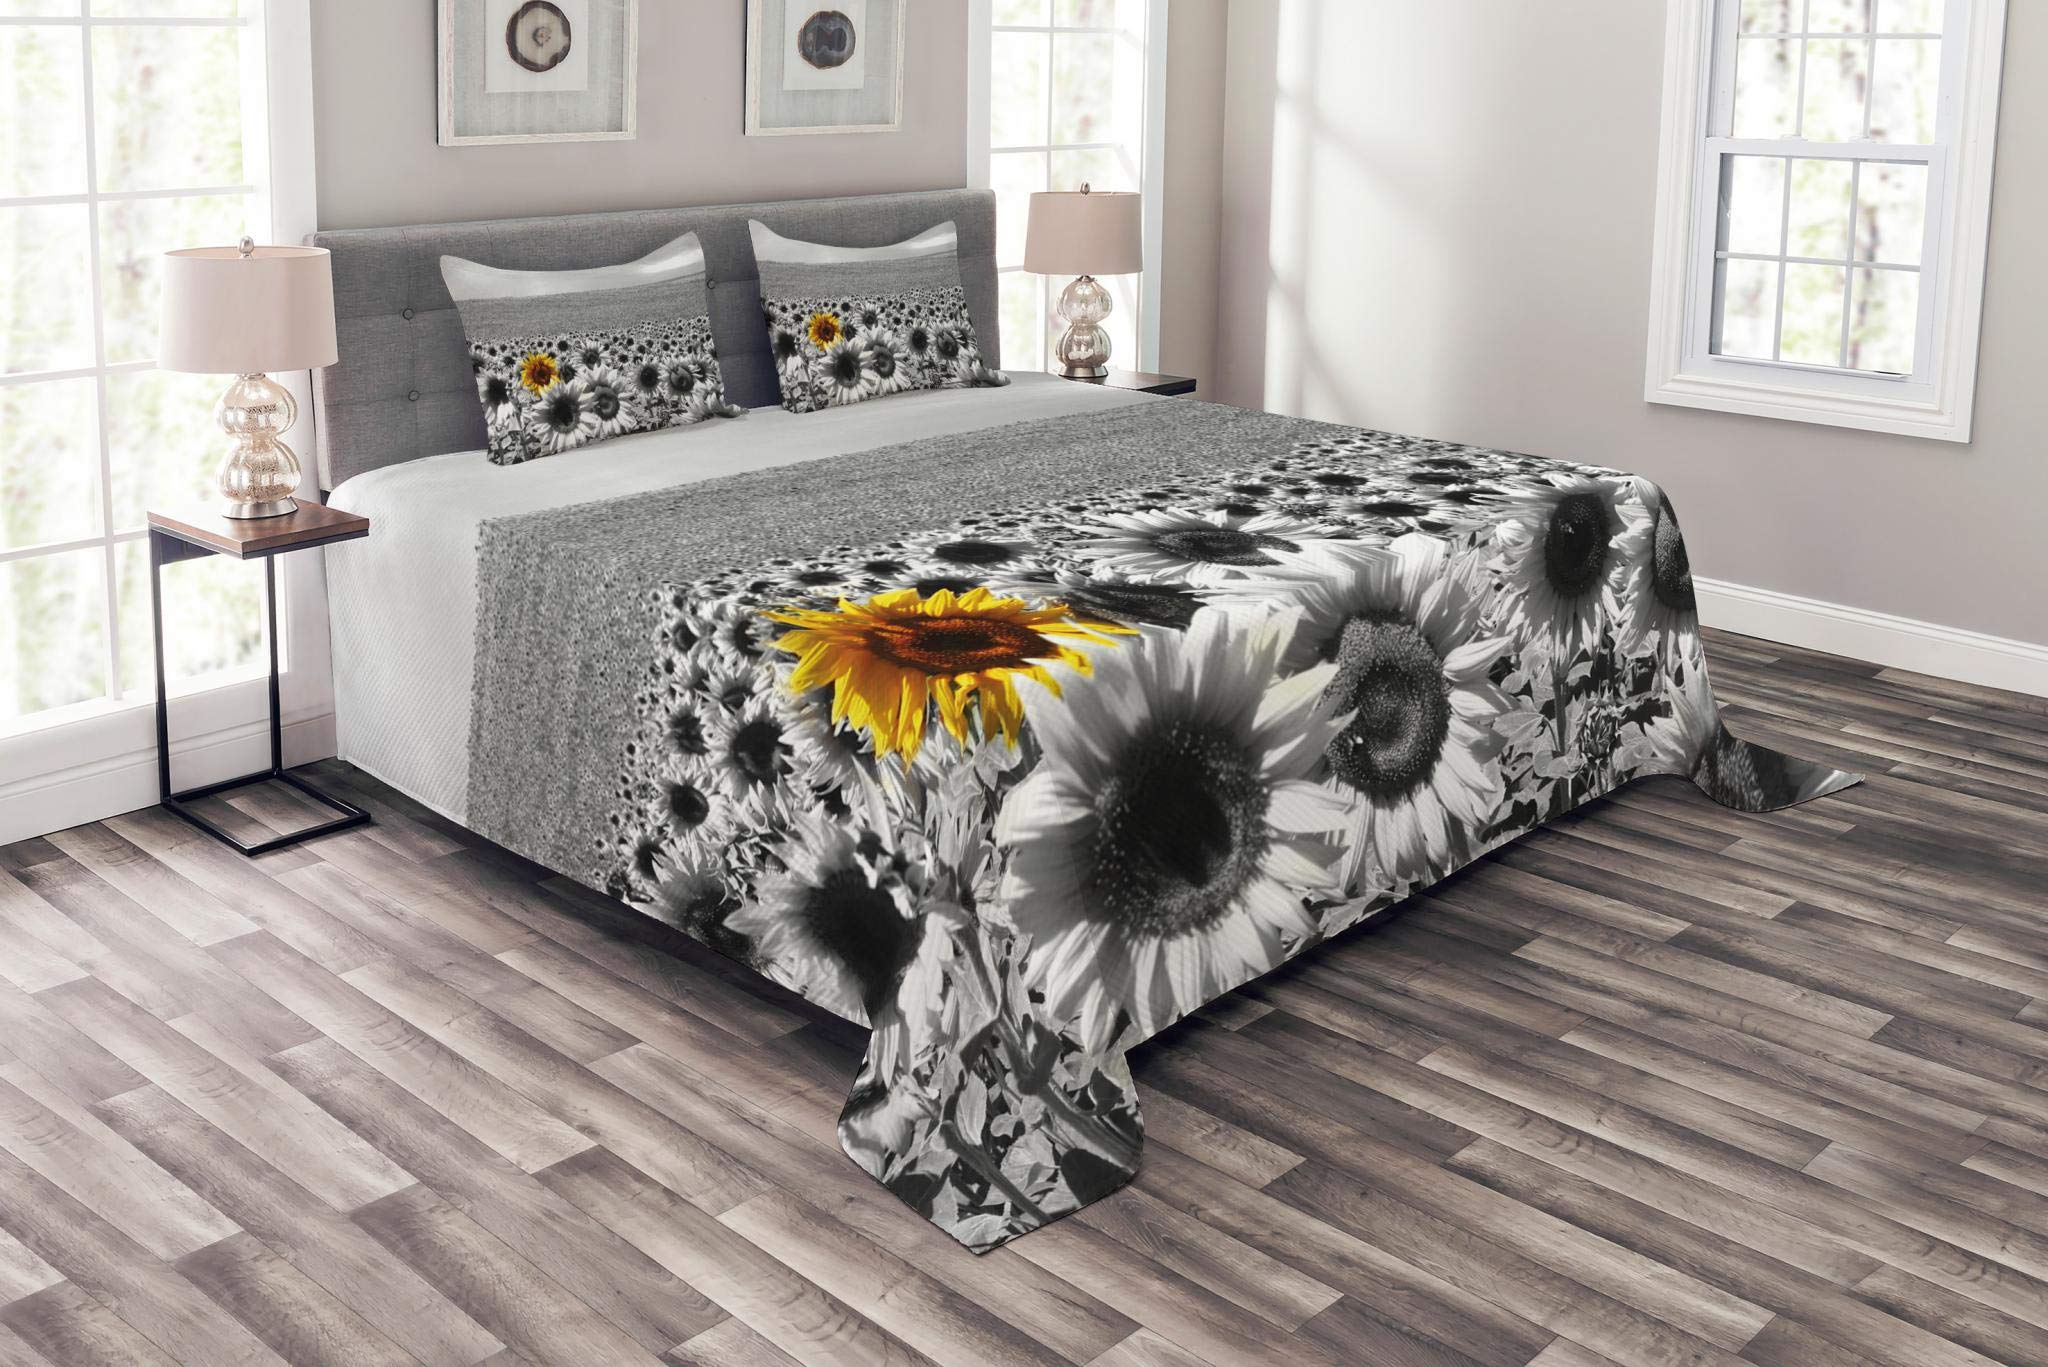 Lunarable Modern Coverlet Set Queen Size, Sunflower Field Black and White with a Single Yellow Flower Spring Landscape Individuality, Decorative Quilted 3 Piece Bedspread Set with 2 Pillow Shams, Grey